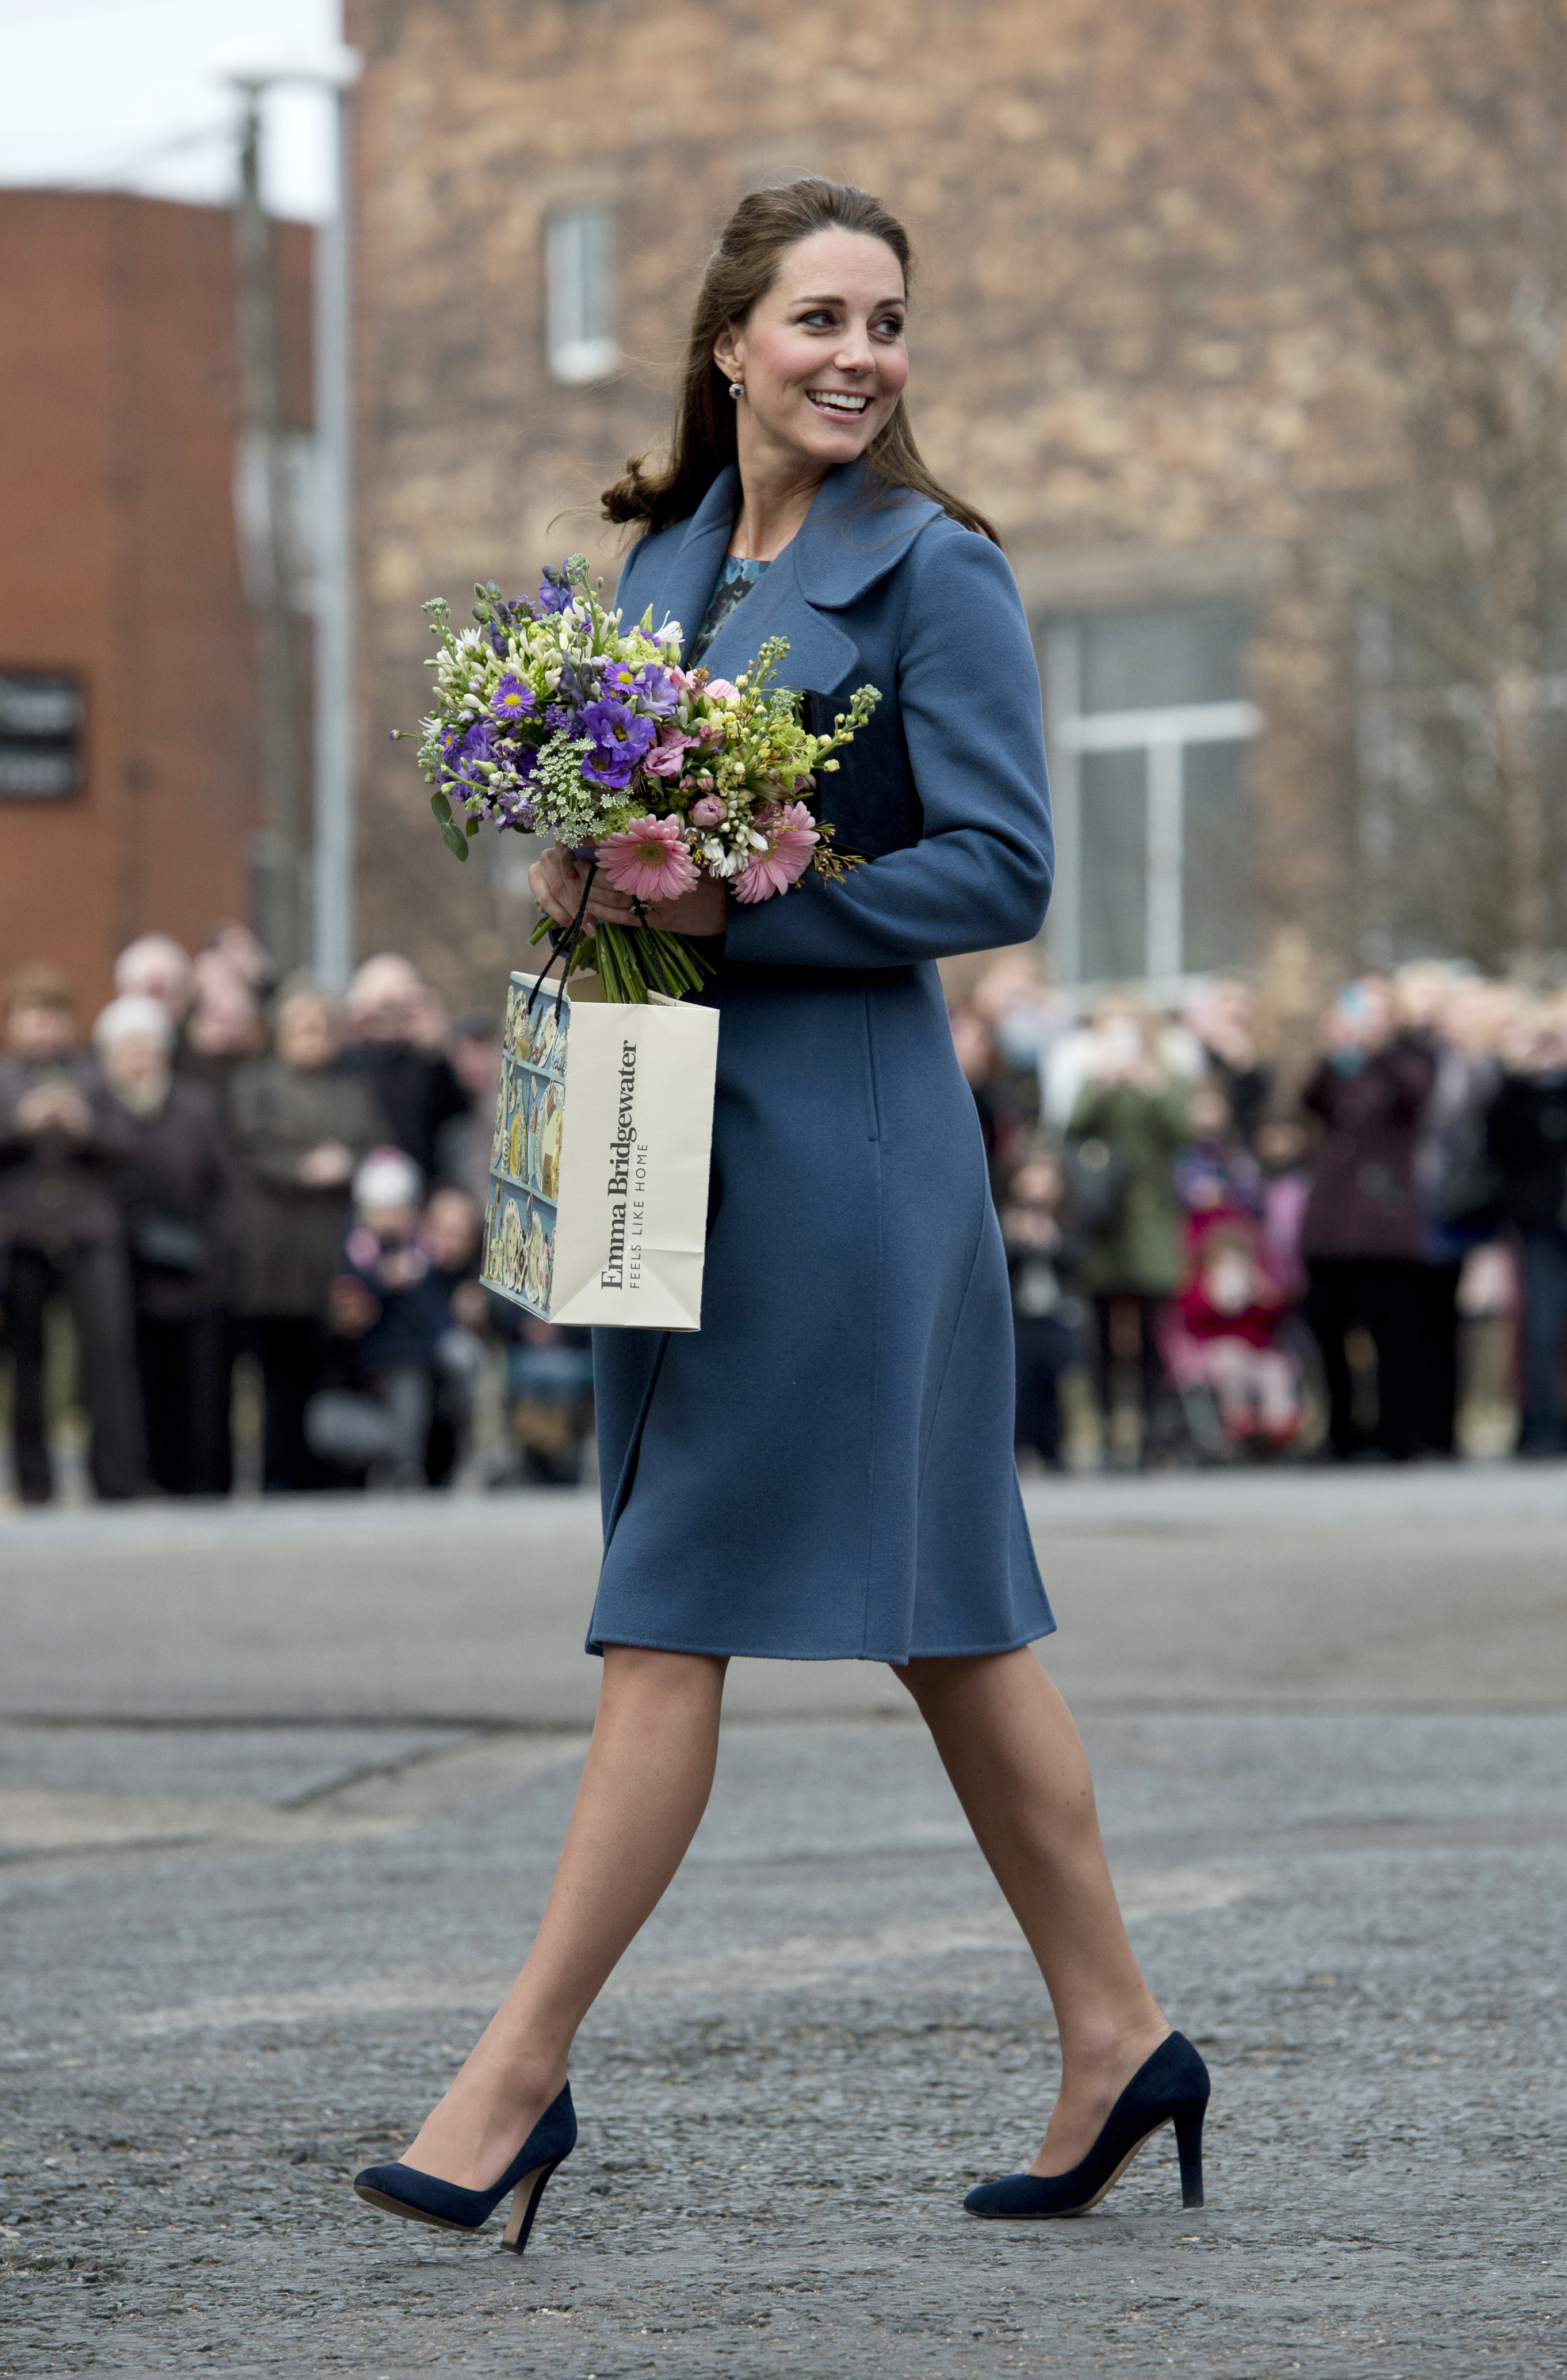 Catherine, Duchess of Cambridge during a visit to the 'Emma Bridgewater' pottery factory on Feb. 18, 2015 in Staffordshire, England.